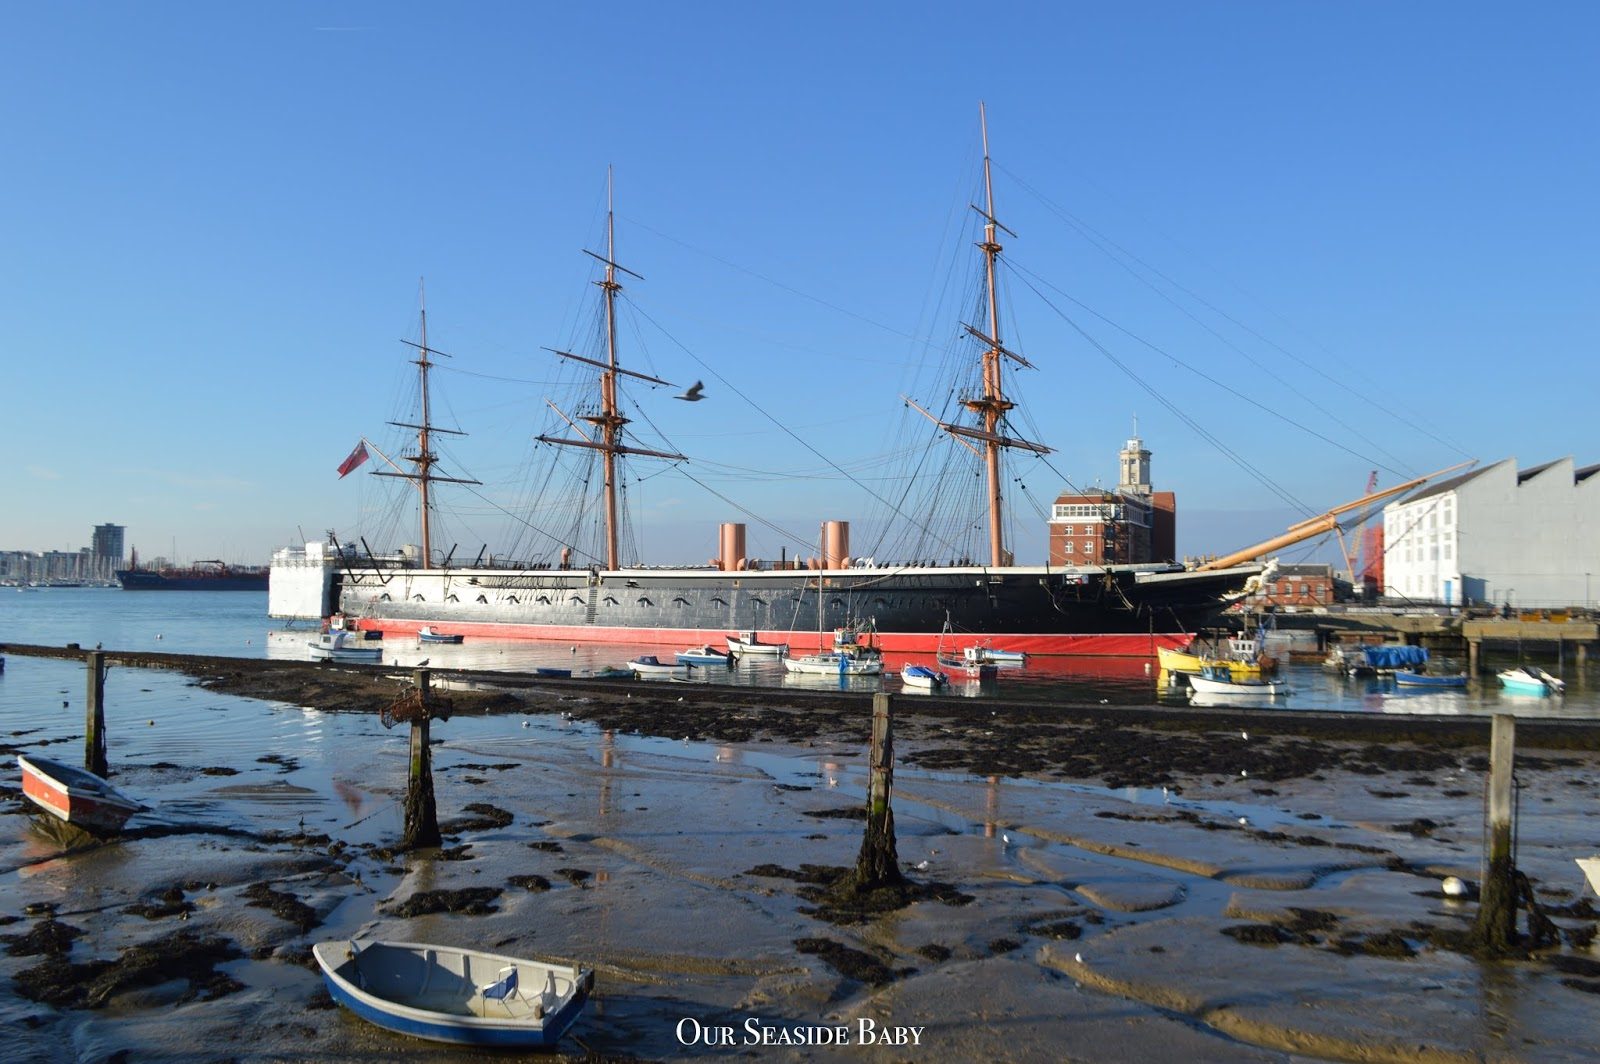 A Weekend in Portsmouth: Historic Dockyard, Mary Rose Museum & Spinnaker Tower